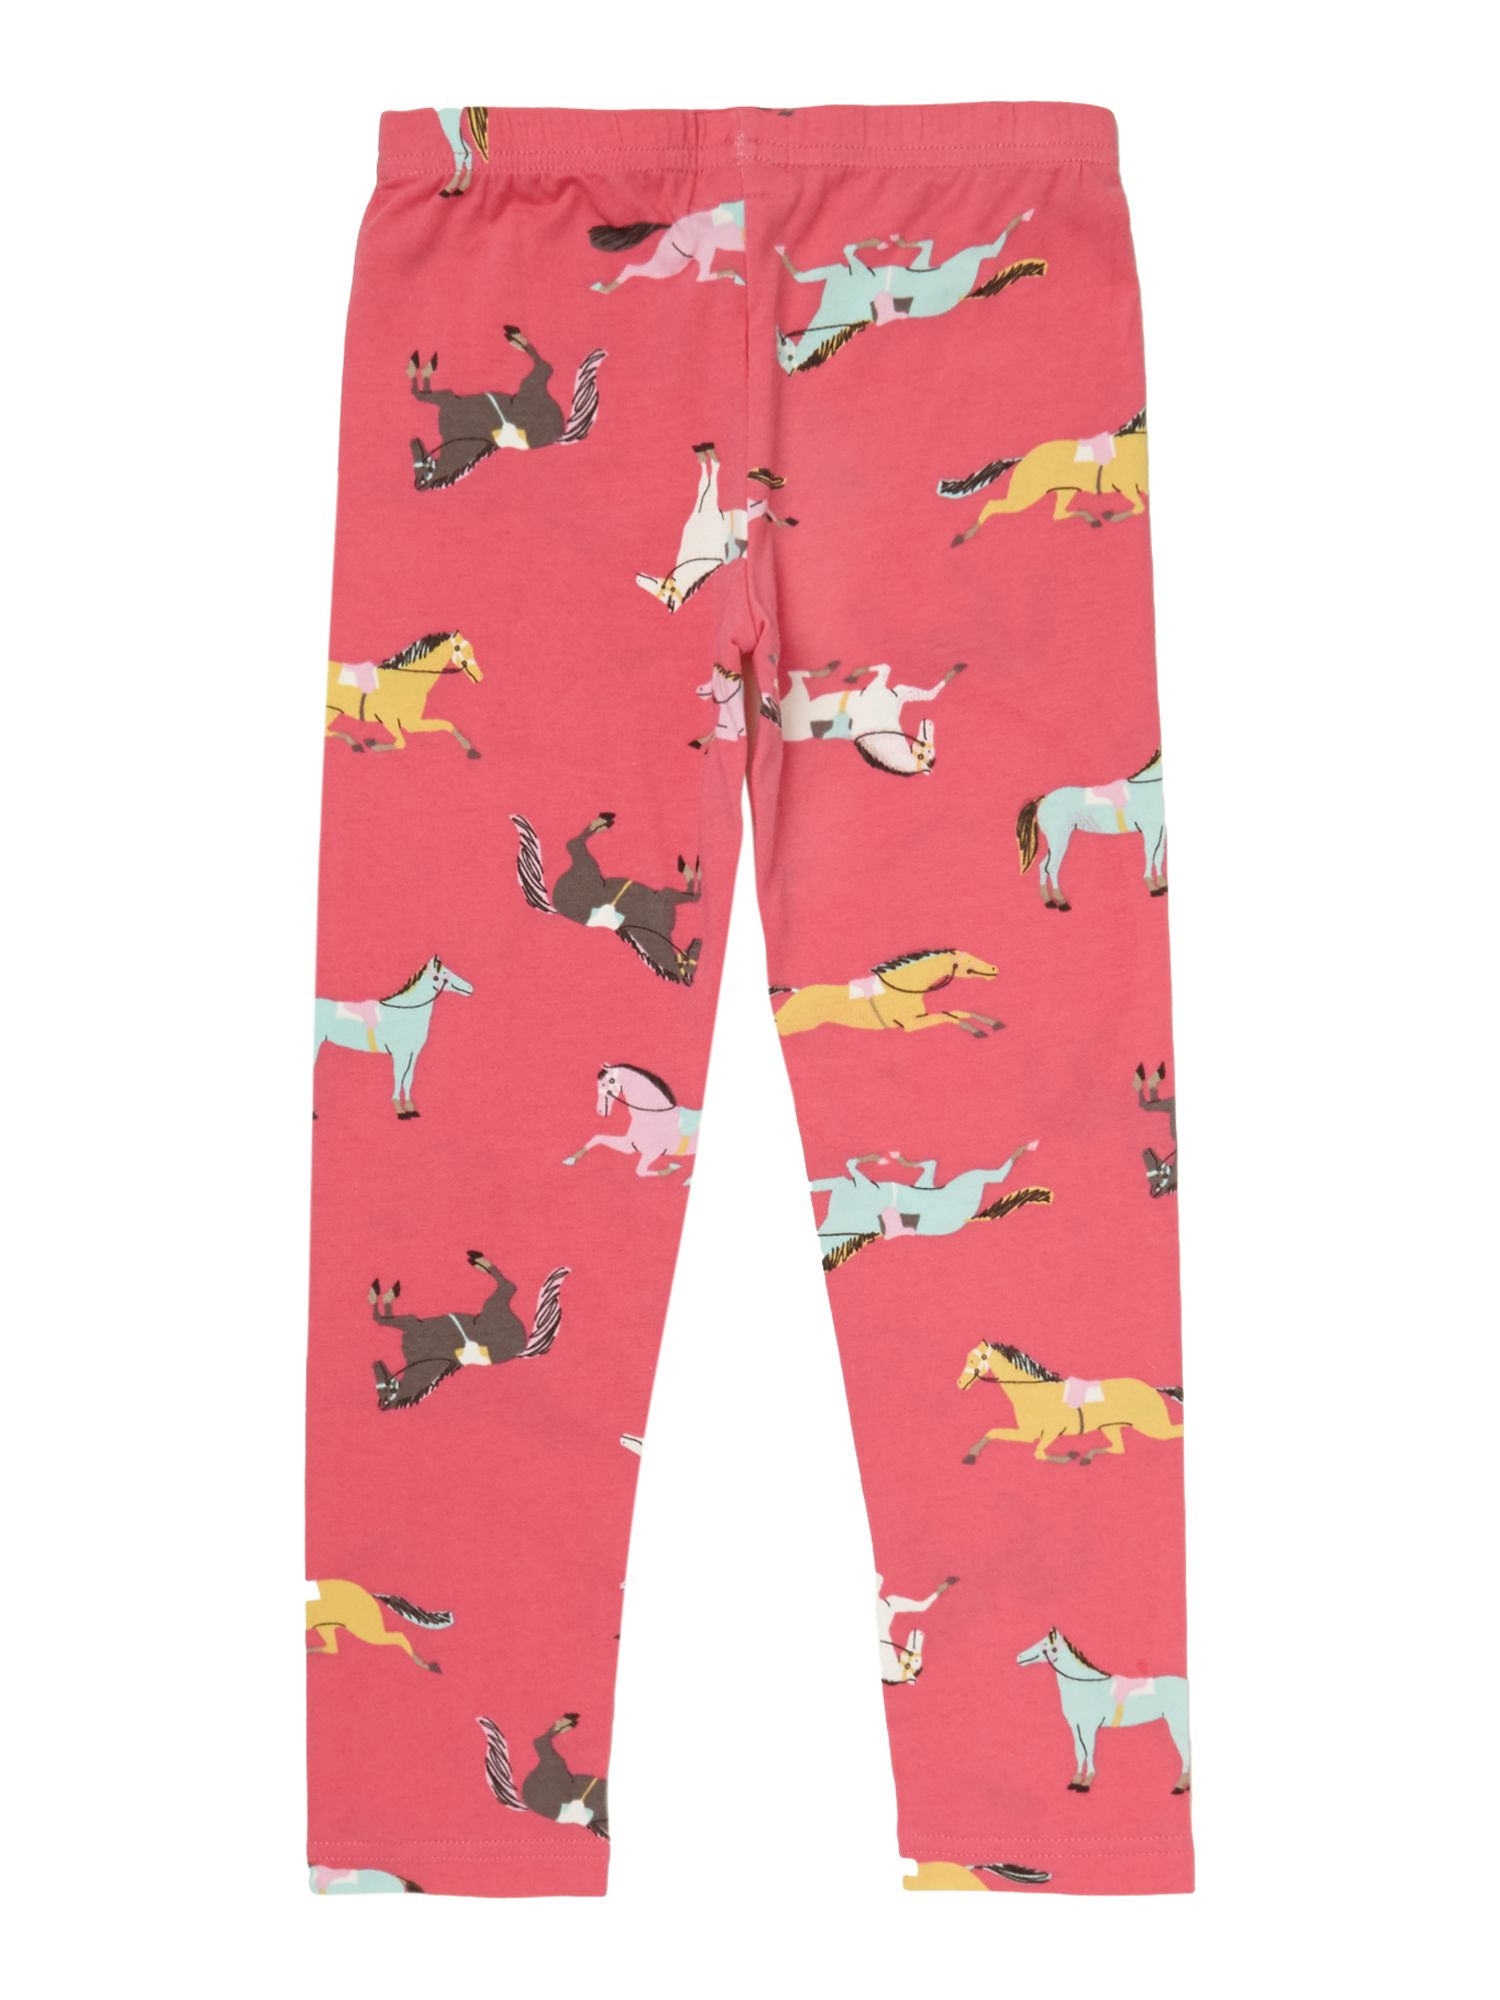 Girls pony print legging